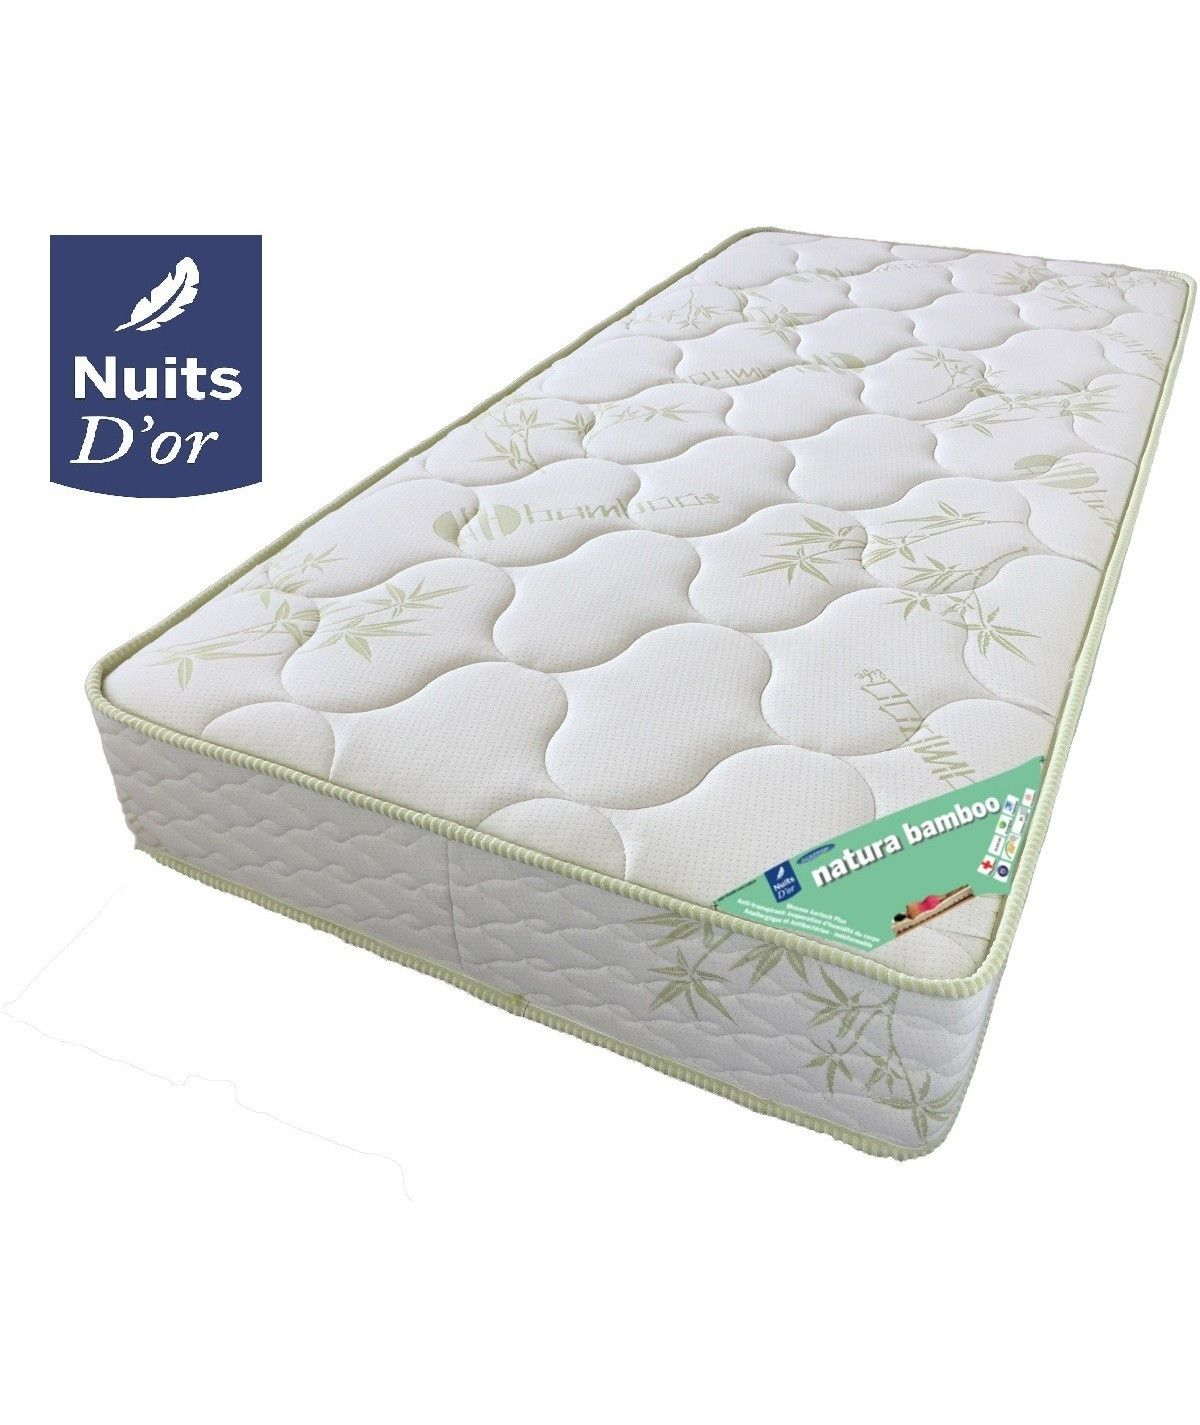 Bamboo Mattress Density 35 Kg / m3 - Height 21 Cm - Very Firm Support - Orthopedic